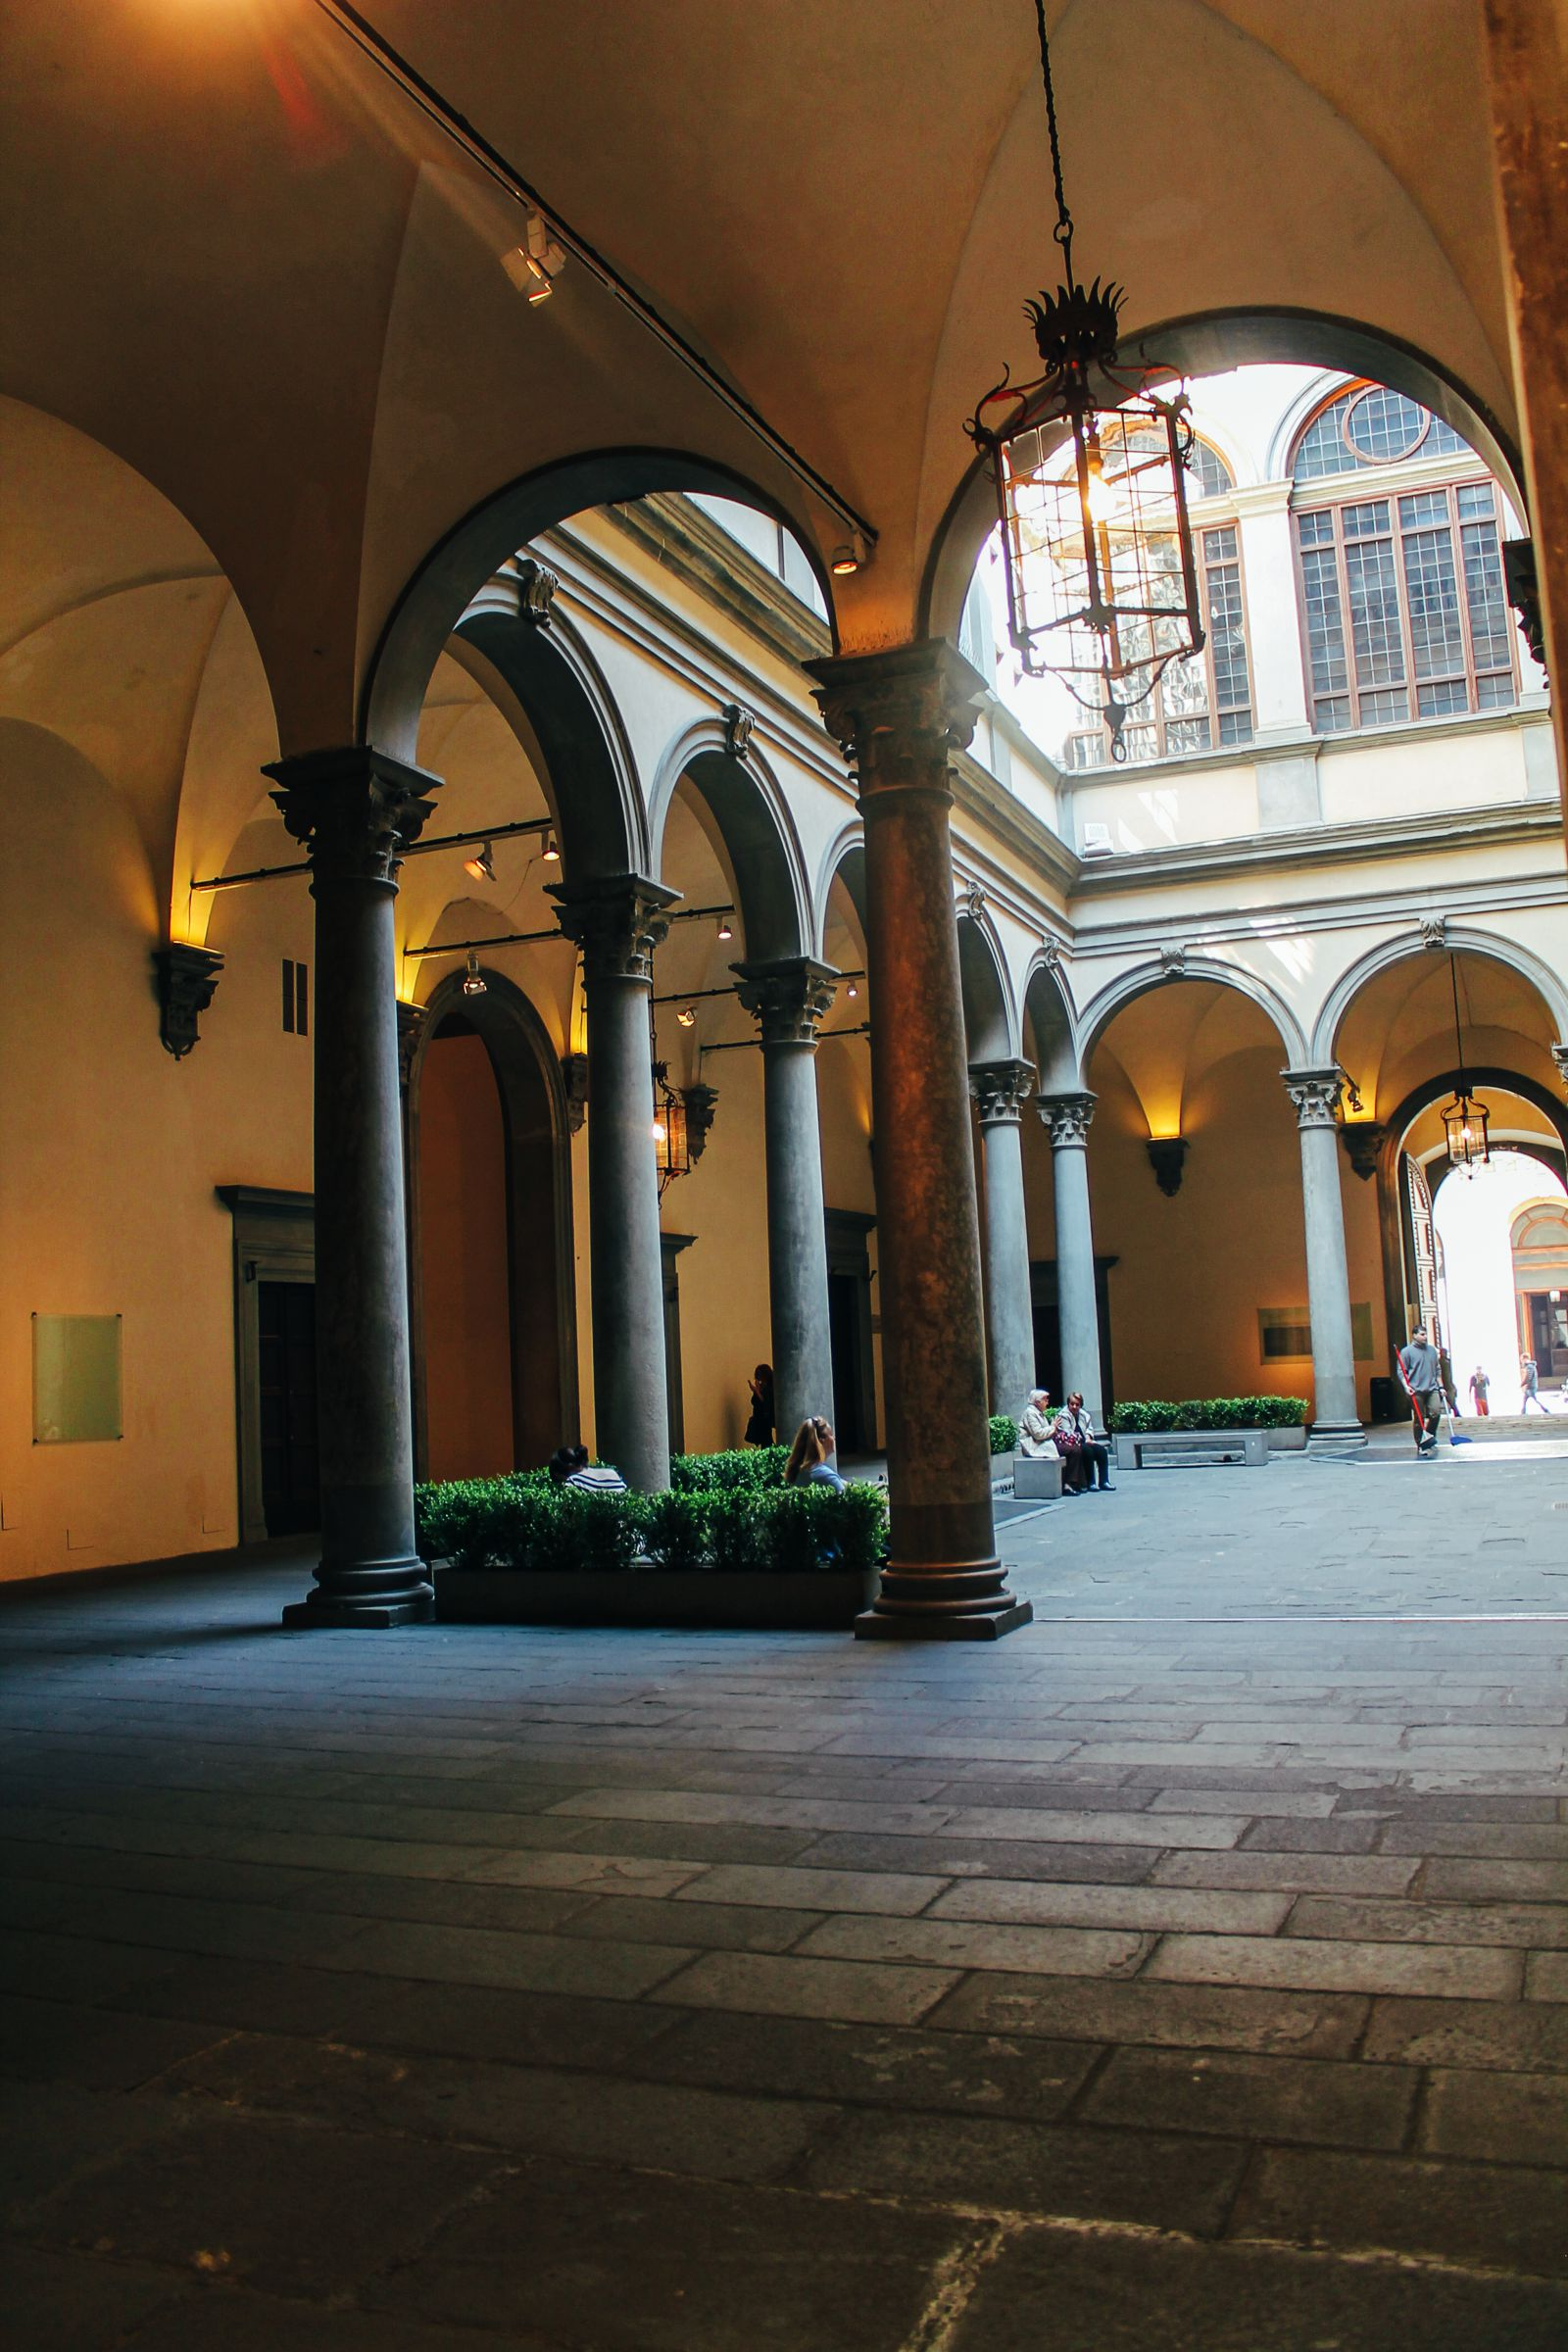 The Sights Of Florence, Italy... A Photo Diary [Part 1] (2)